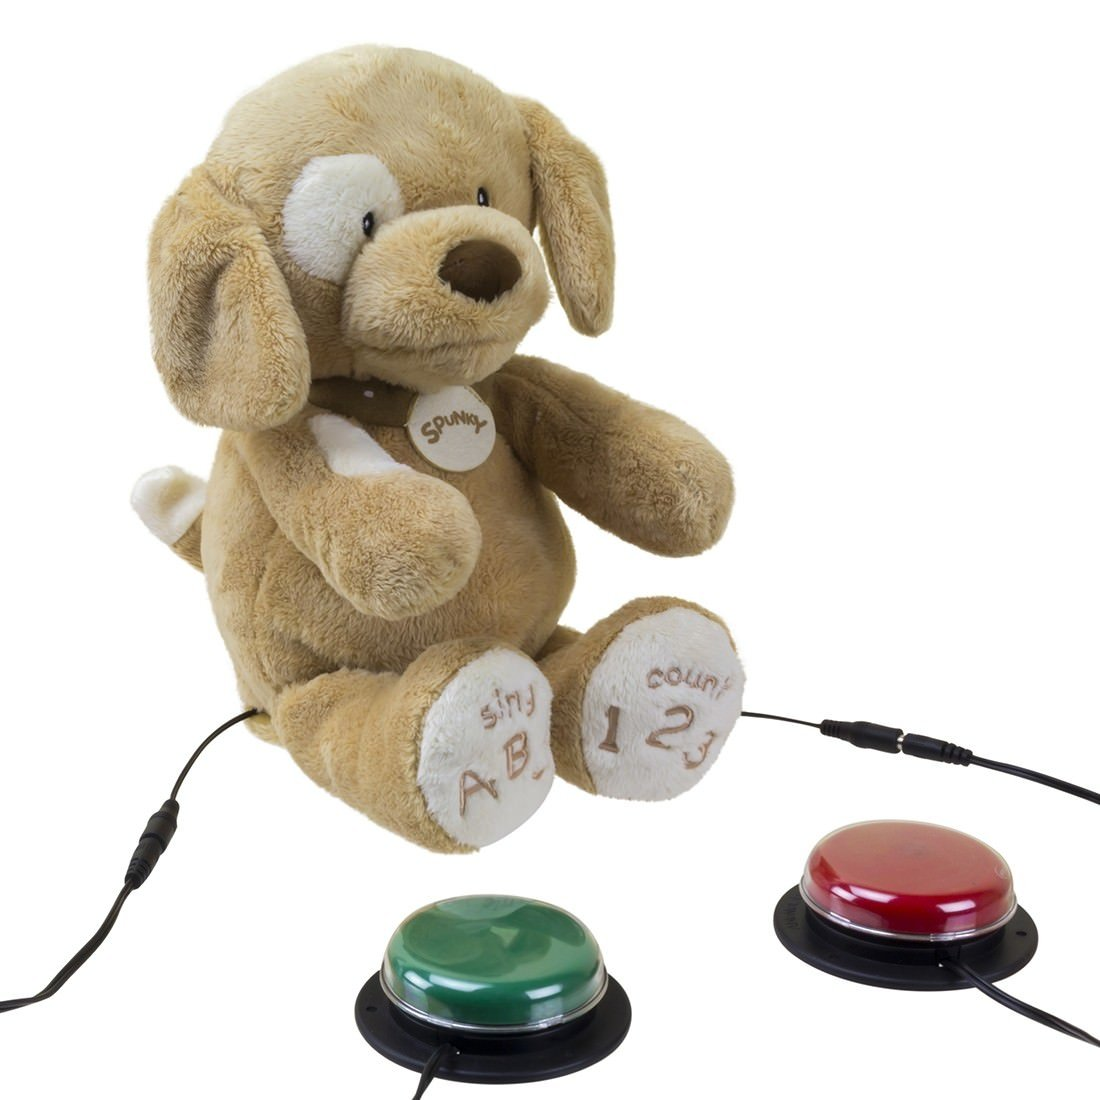 Switch Adapted Toy ABC 123 Spunky The Dog by AbleNet 30000034 by Ablenet (Image #2)